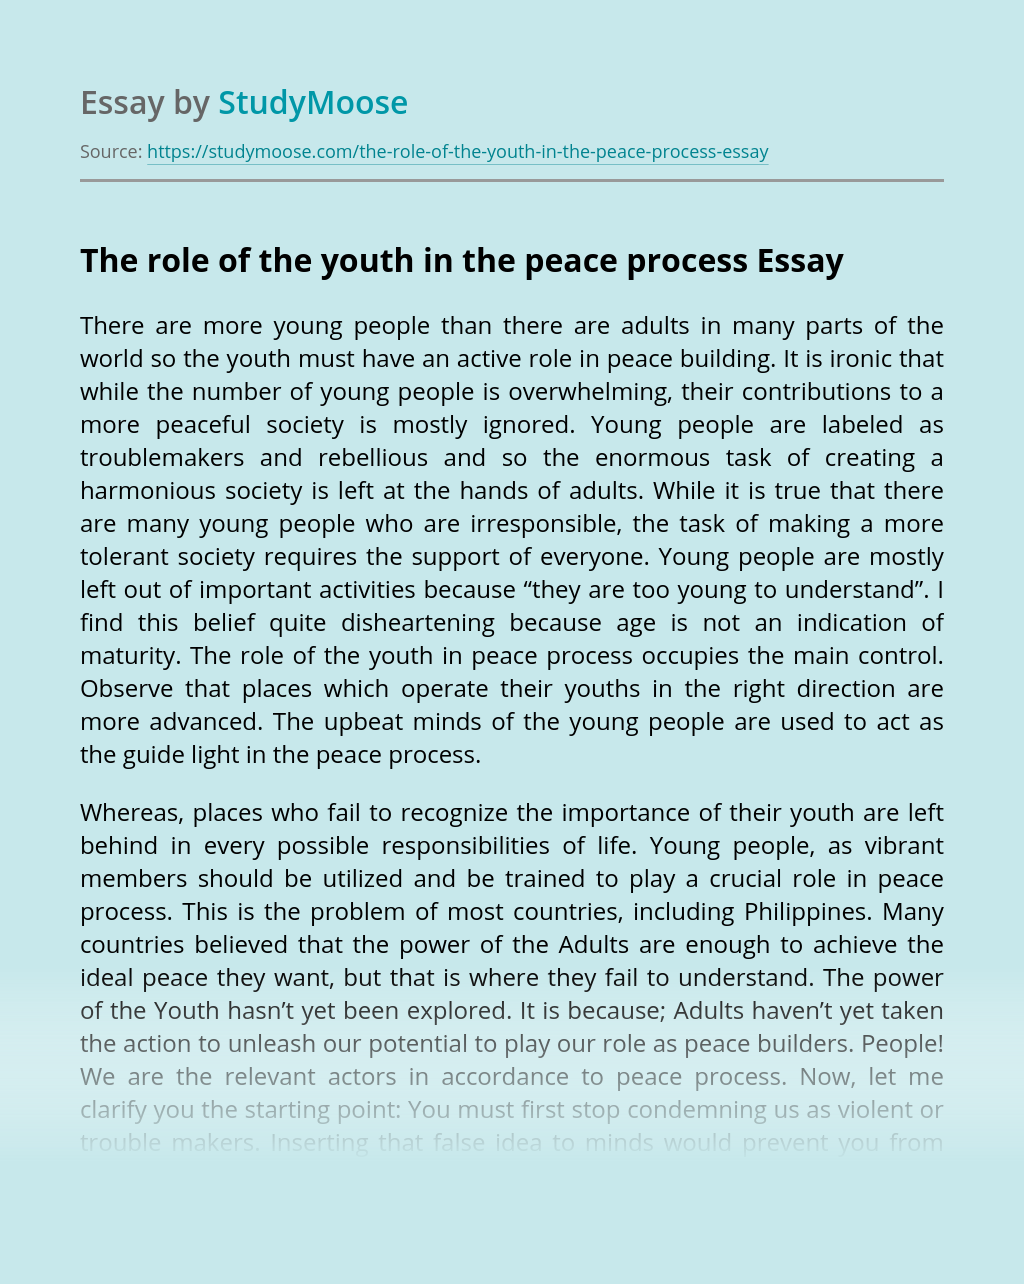 The role of the youth in the peace process